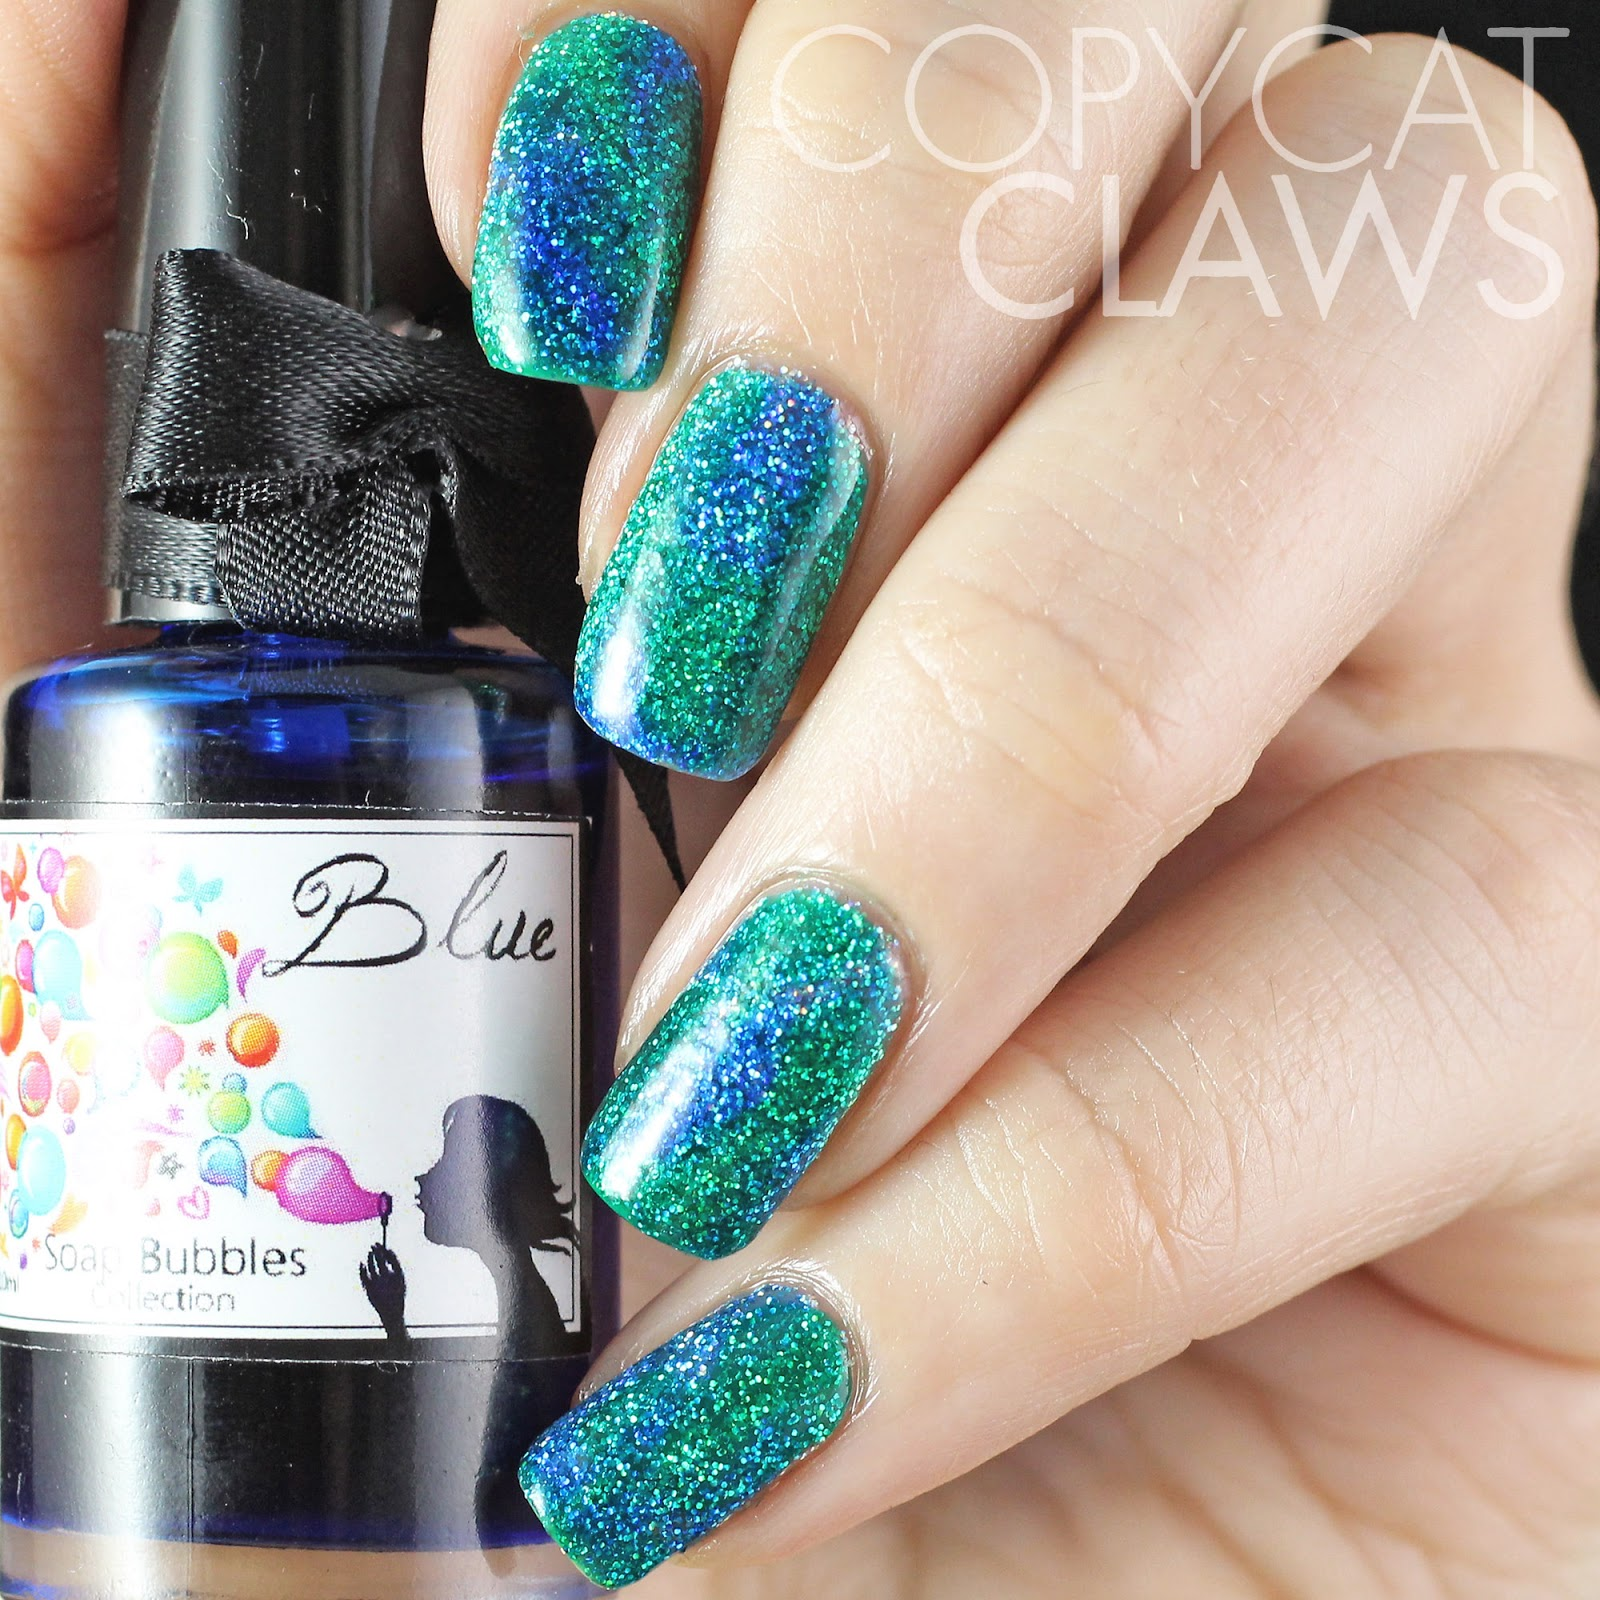 Copycat Claws: Nail Stamping over Glitter and Color4Nails ...